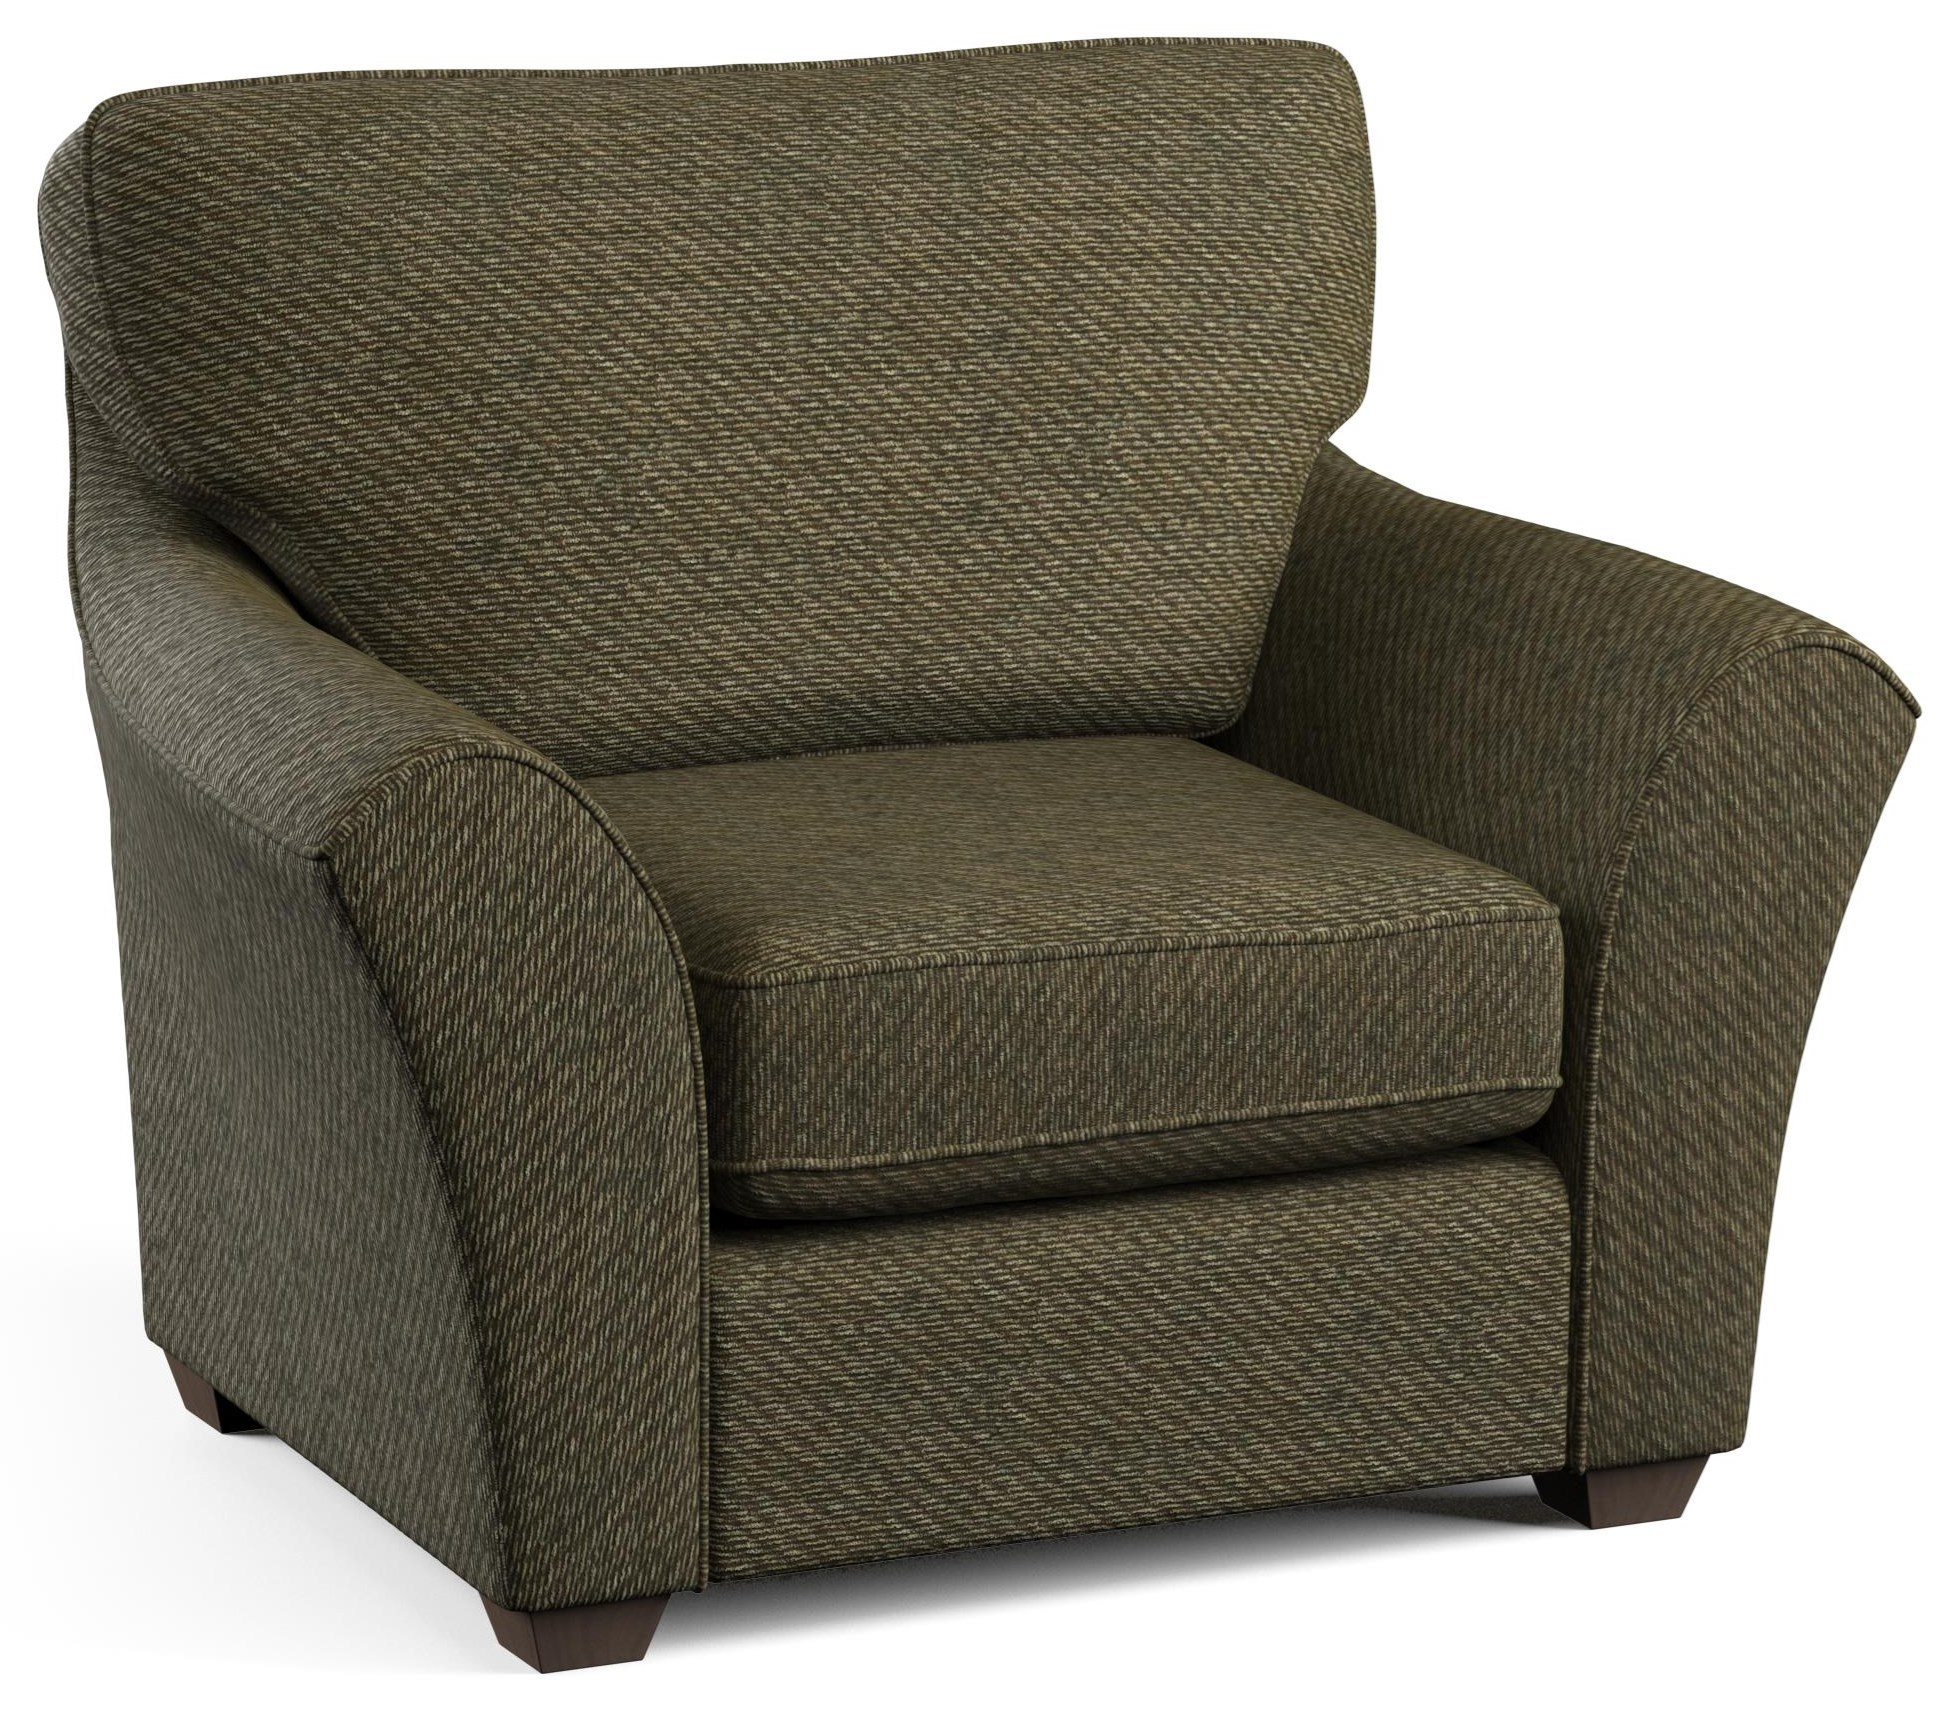 112 Starmount Pistachio Starmount Chair by Sunset Home at Walker's Furniture